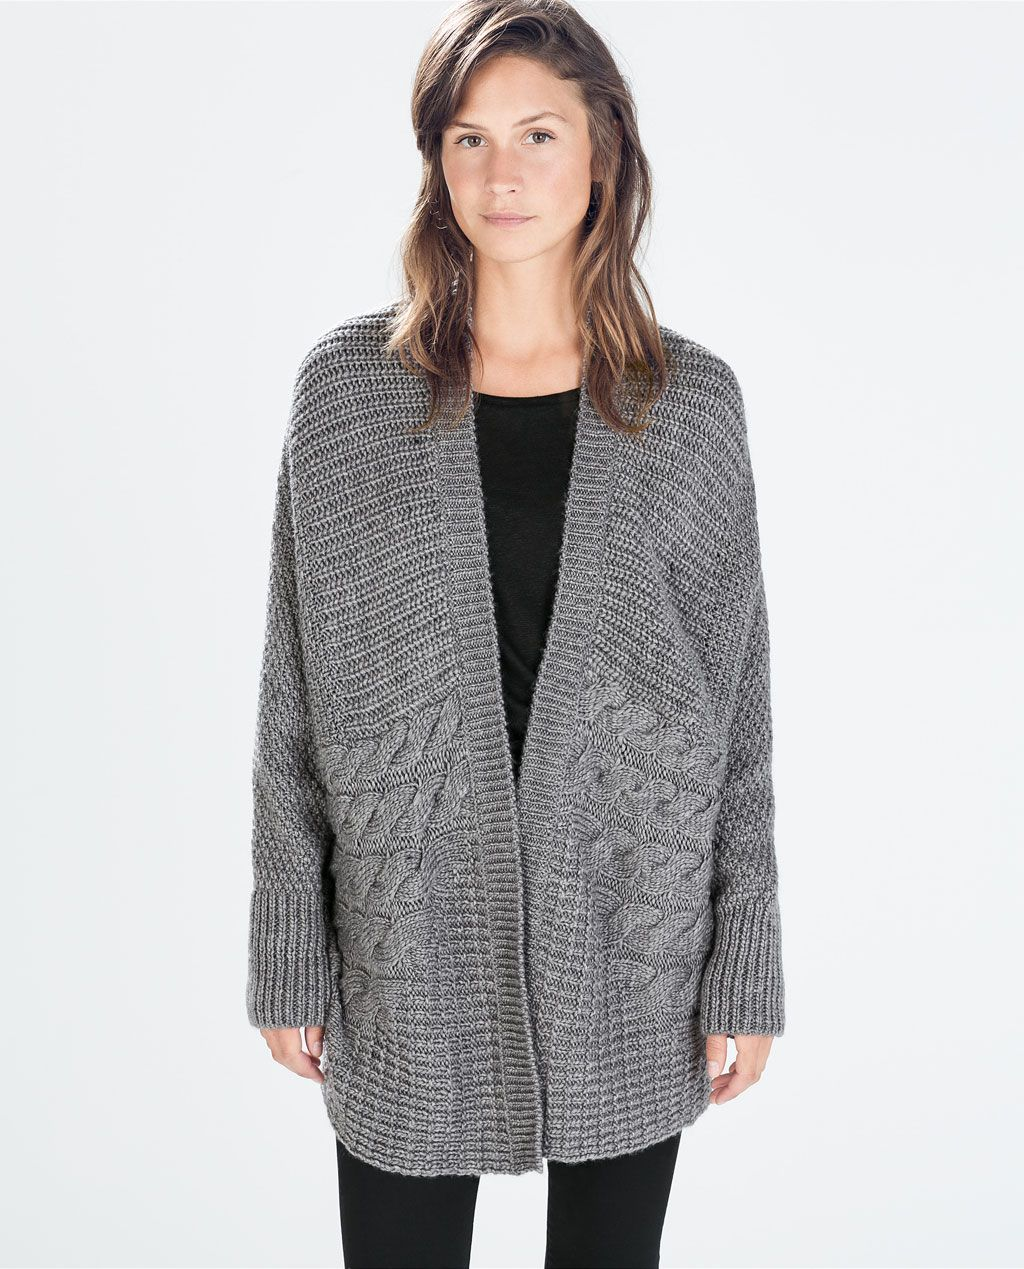 ZARA - NEW THIS WEEK - OVERSIZE CABLE KNIT CARDIGAN. Autumn/Winter ...